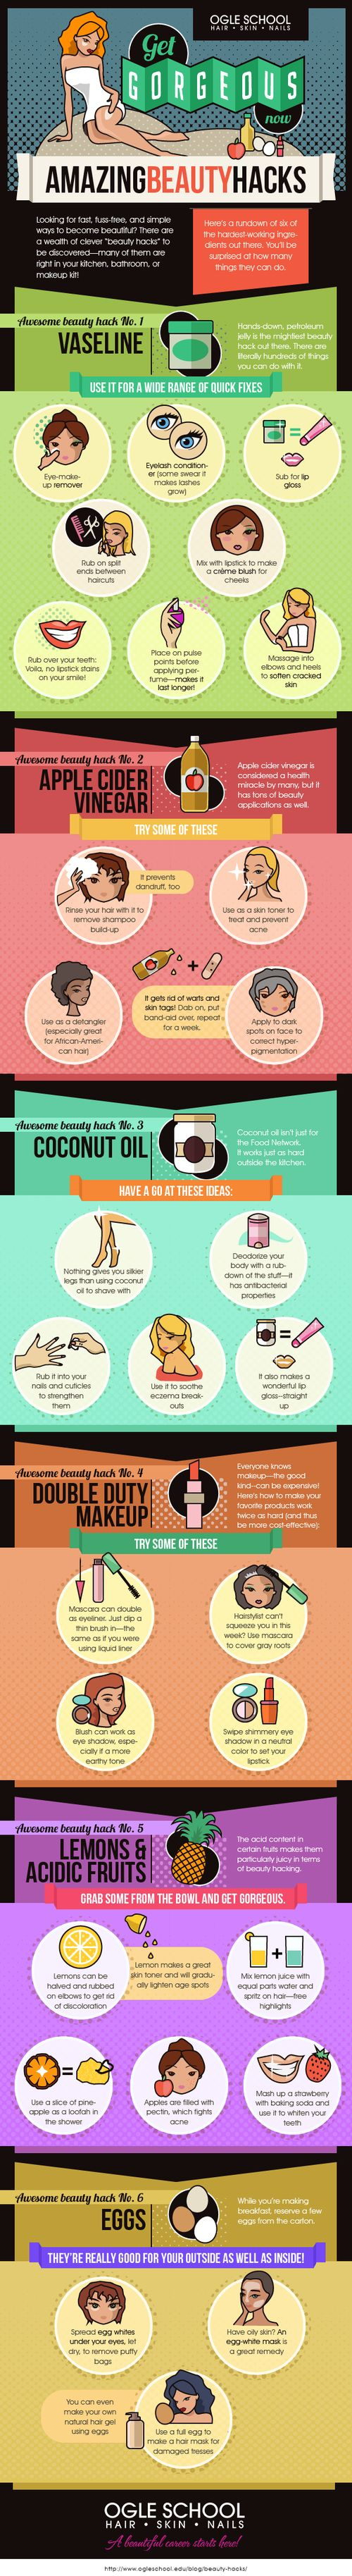 Get Gorgeous Now: Six Amazing Beauty Hacks [Infographic] these tips have helped me soo much